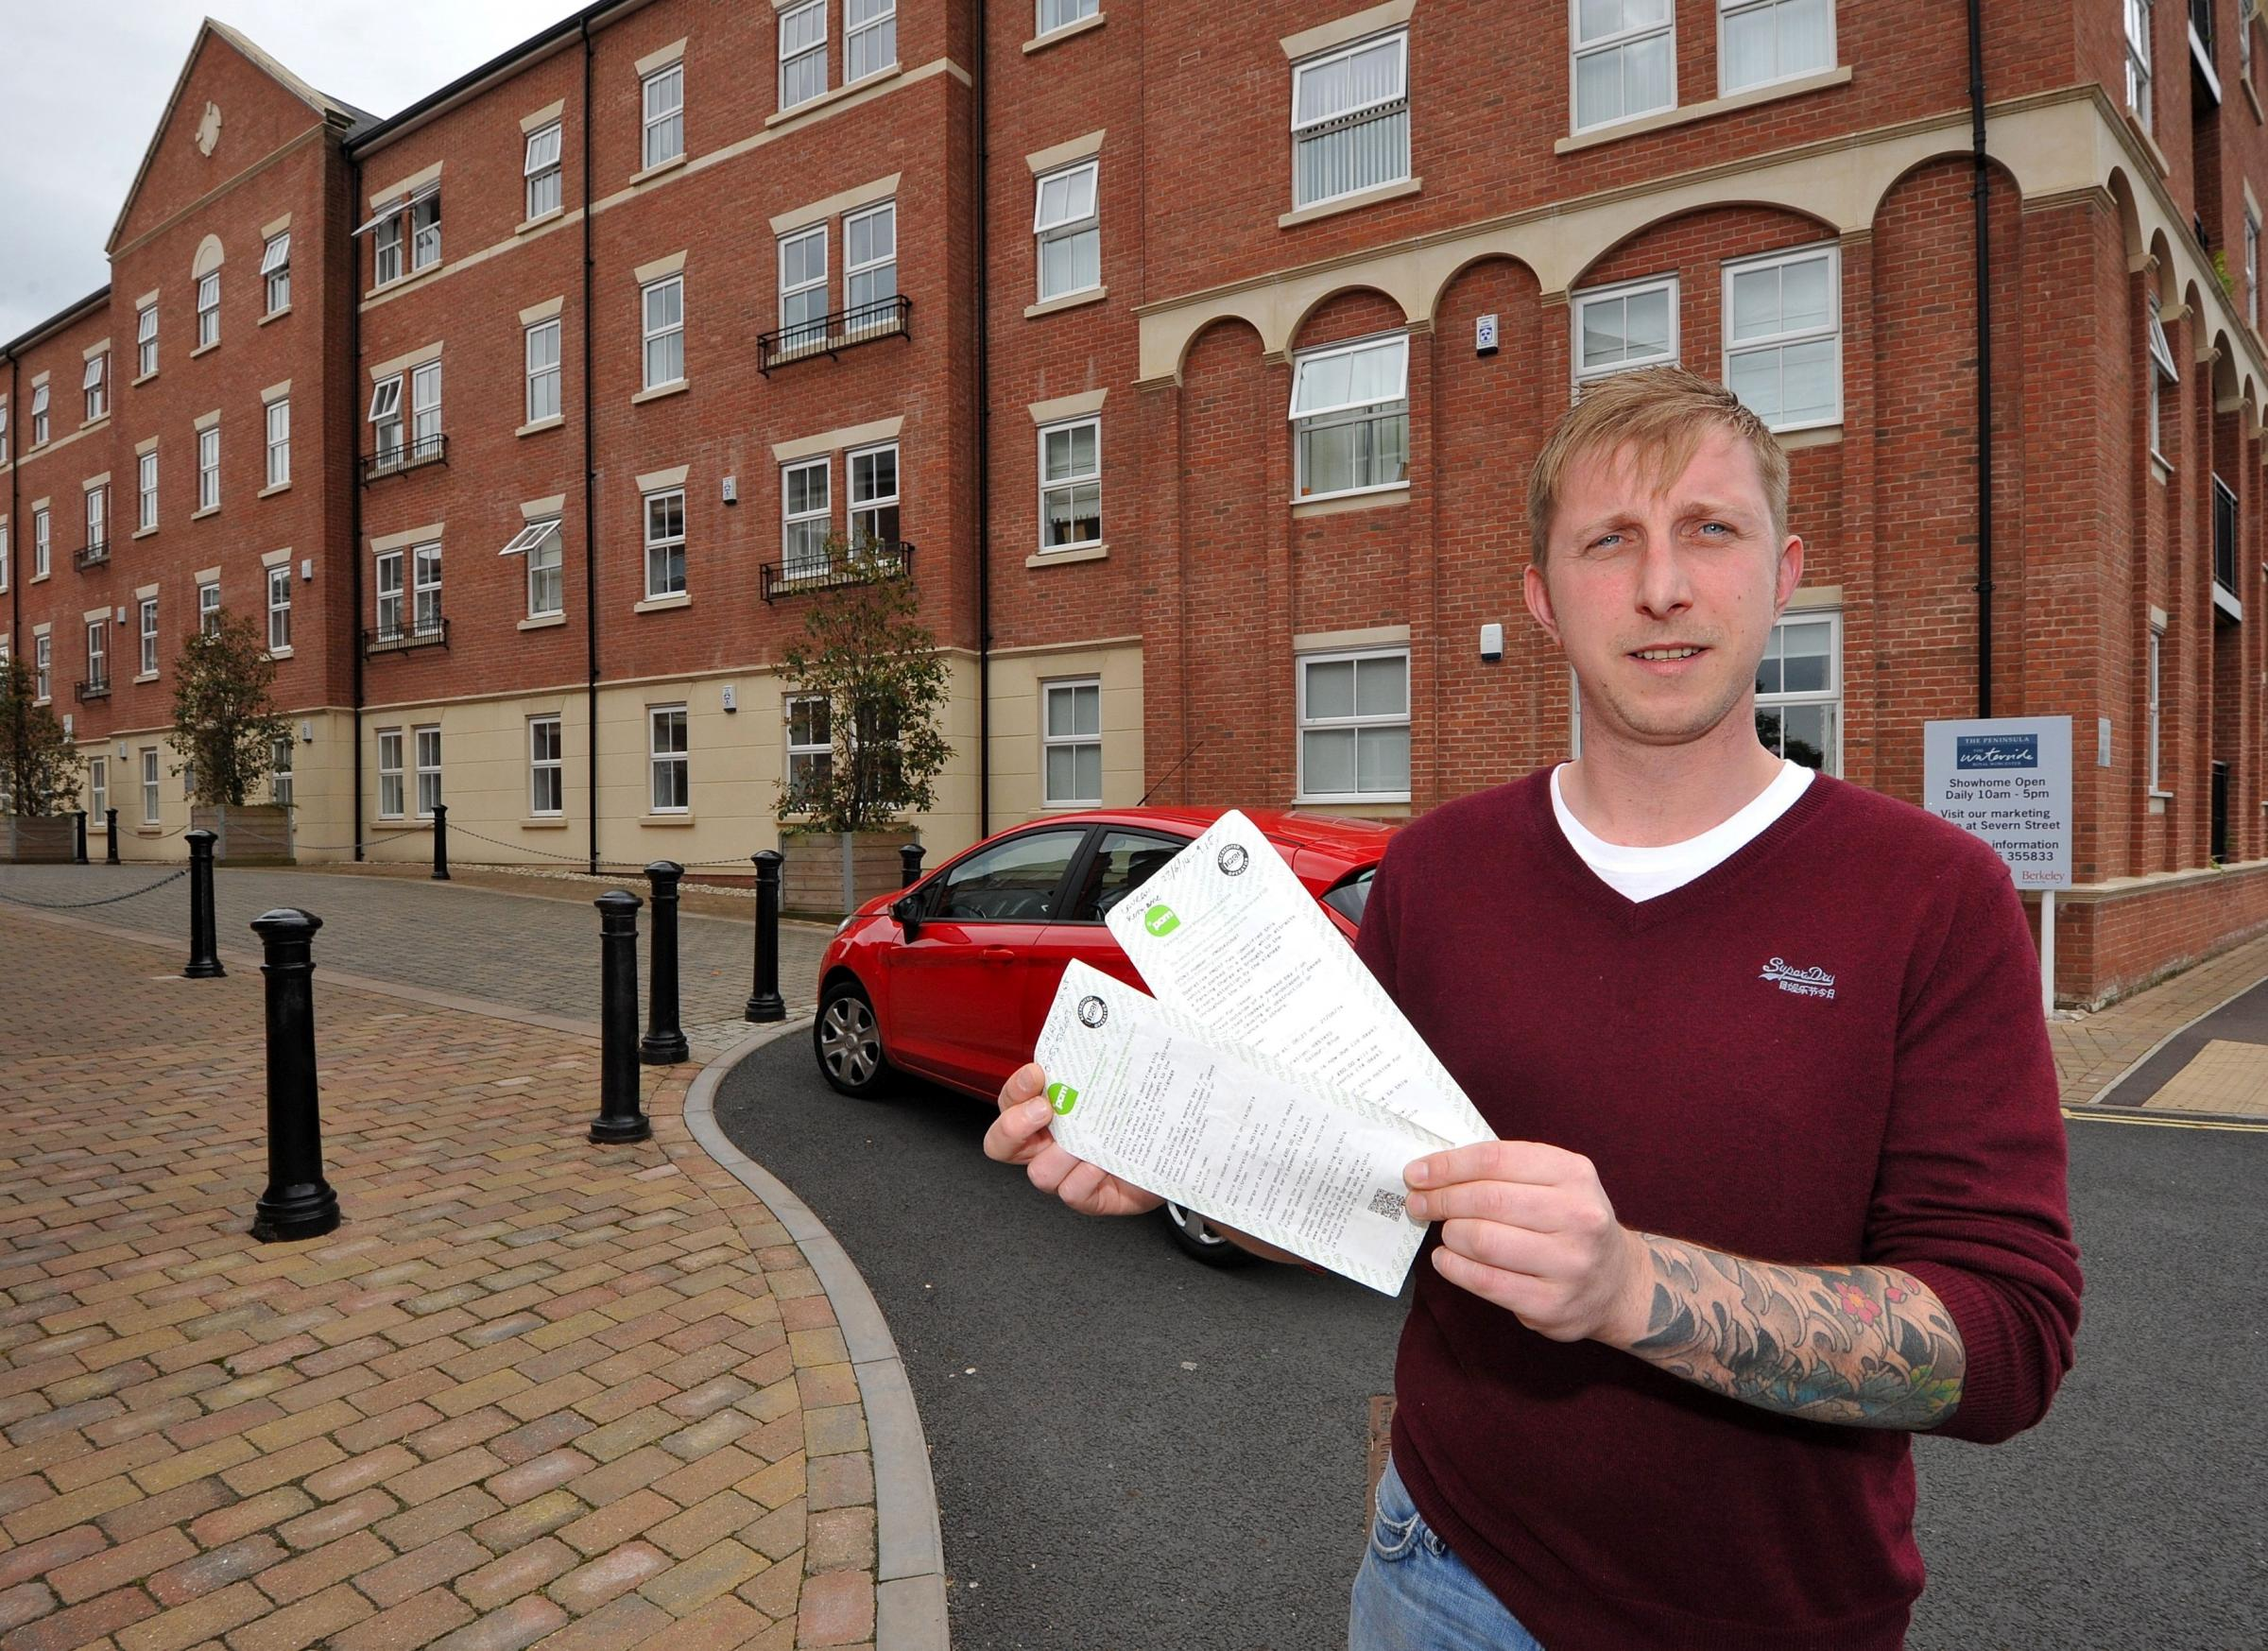 Angry resident refuses to pay parking fines